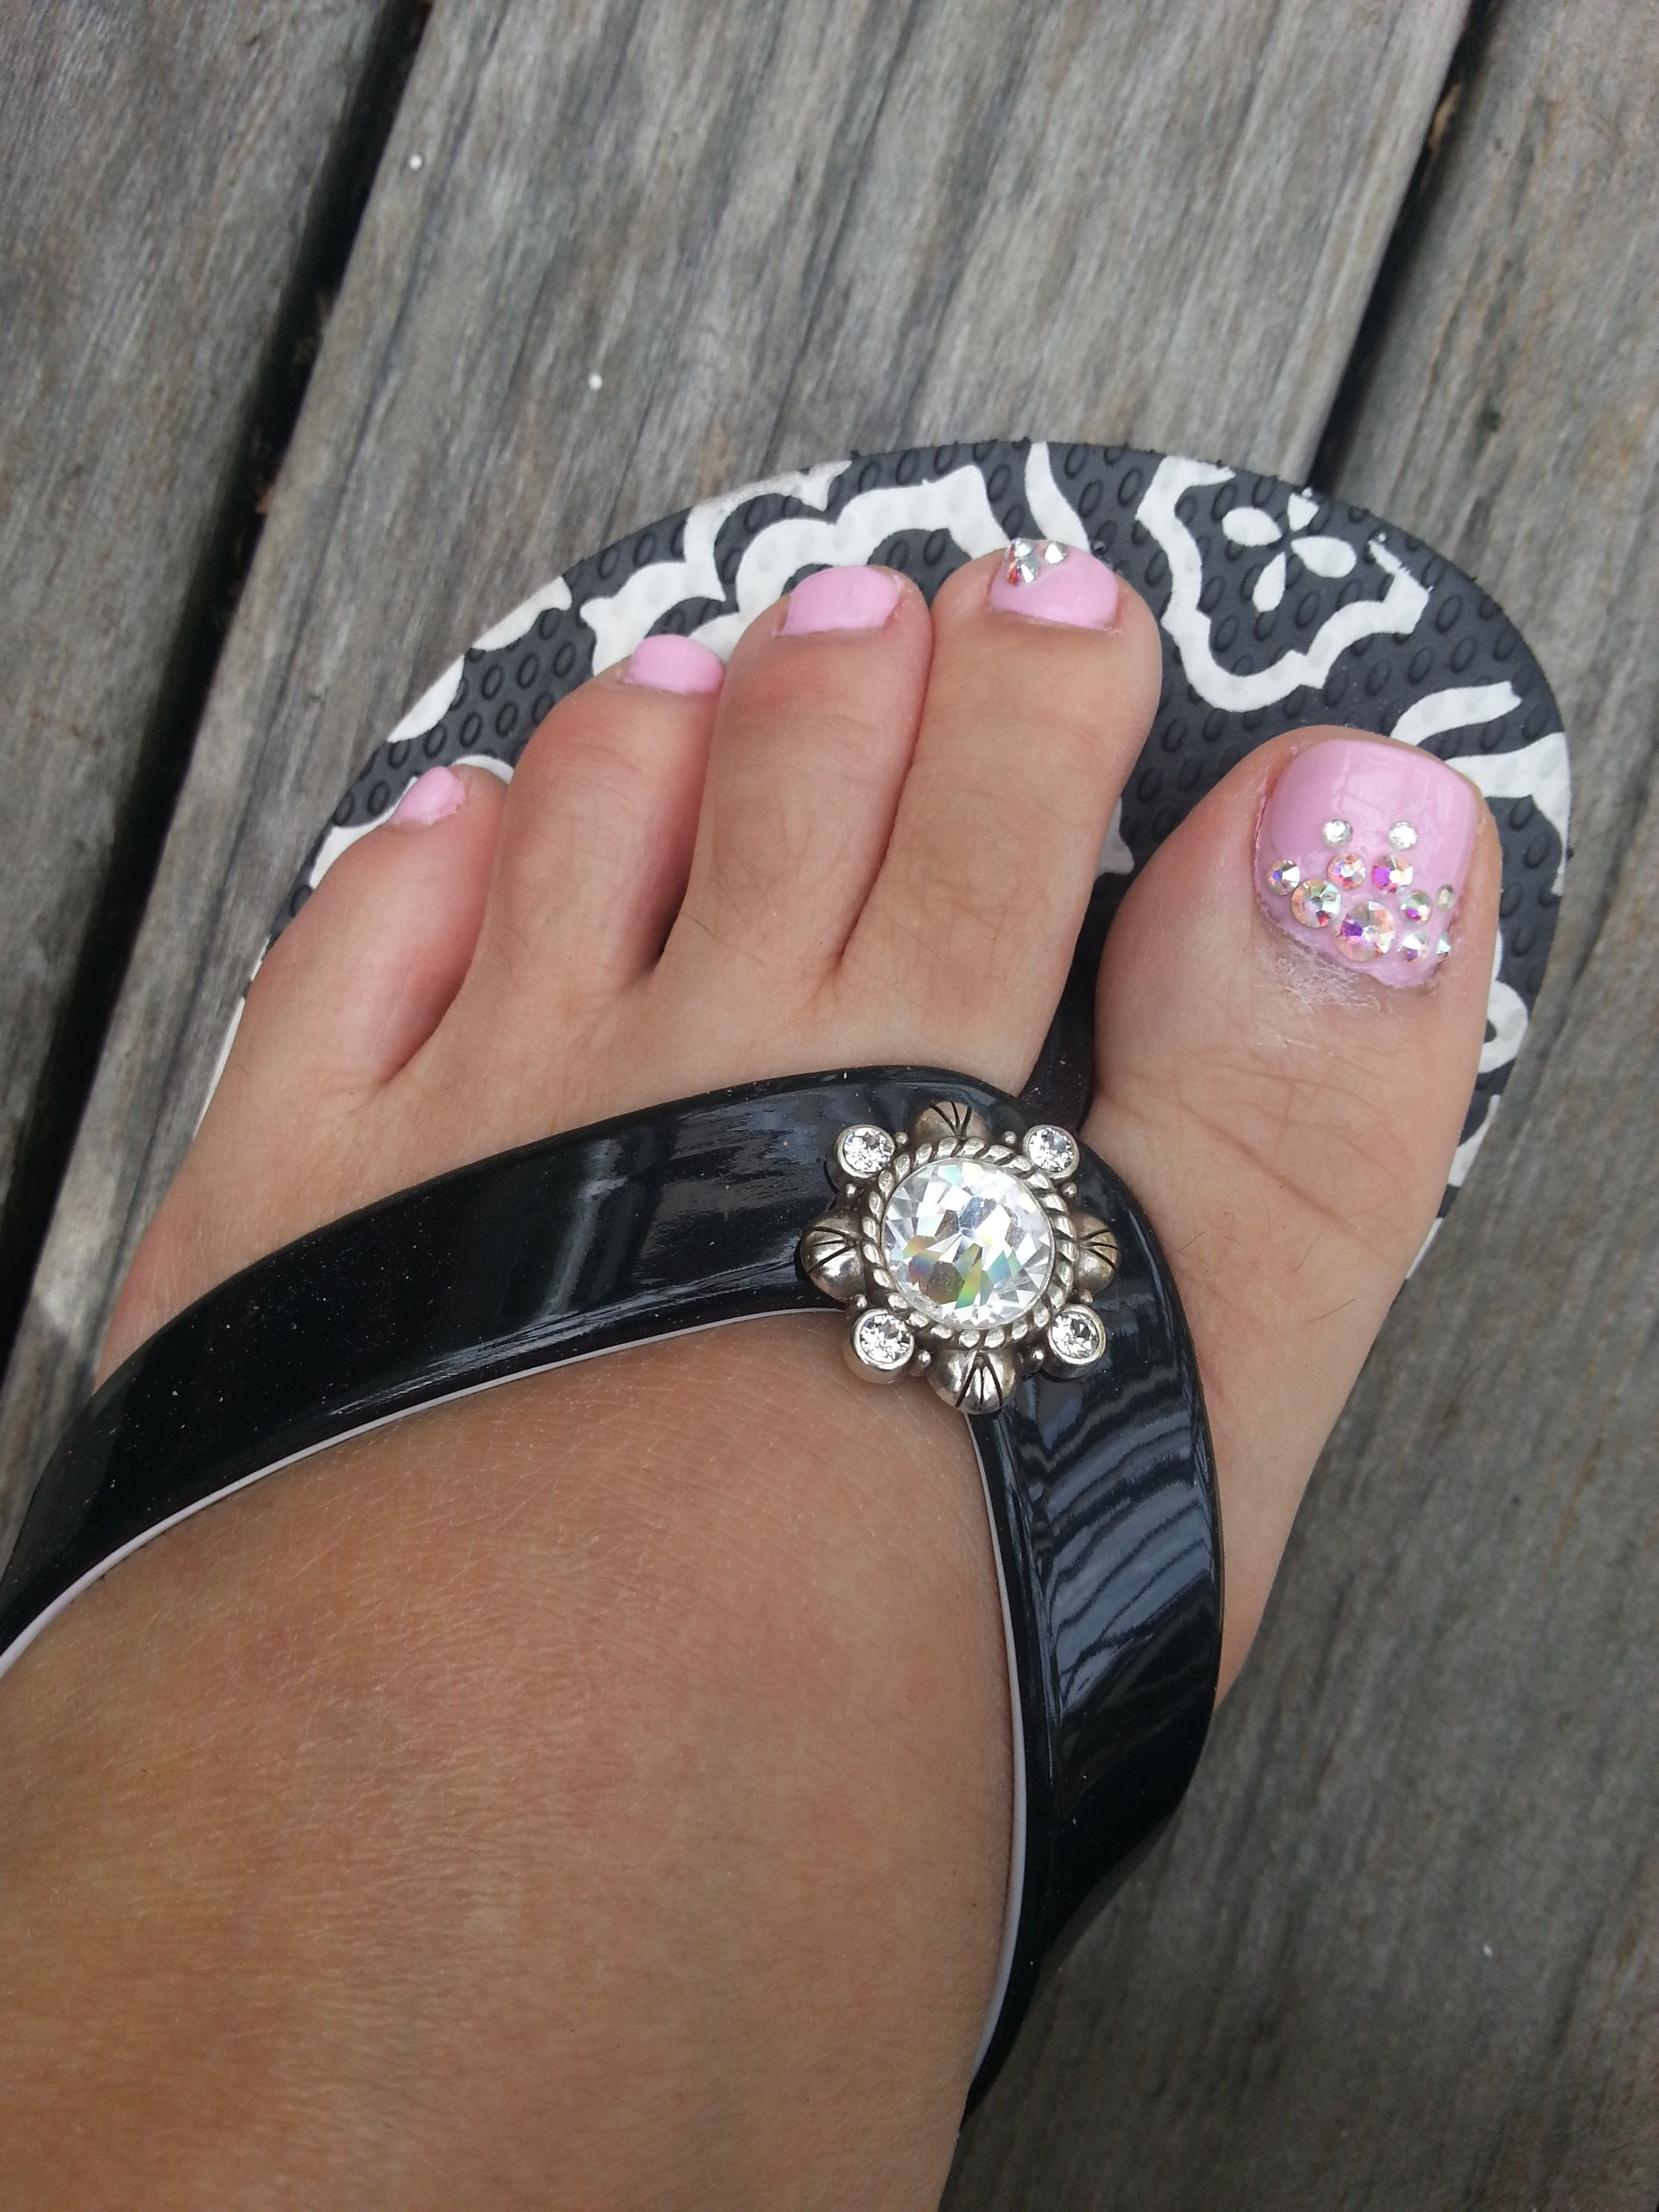 Whisper Pink Toe Nails With Bling Design Very Cute For Open Toes